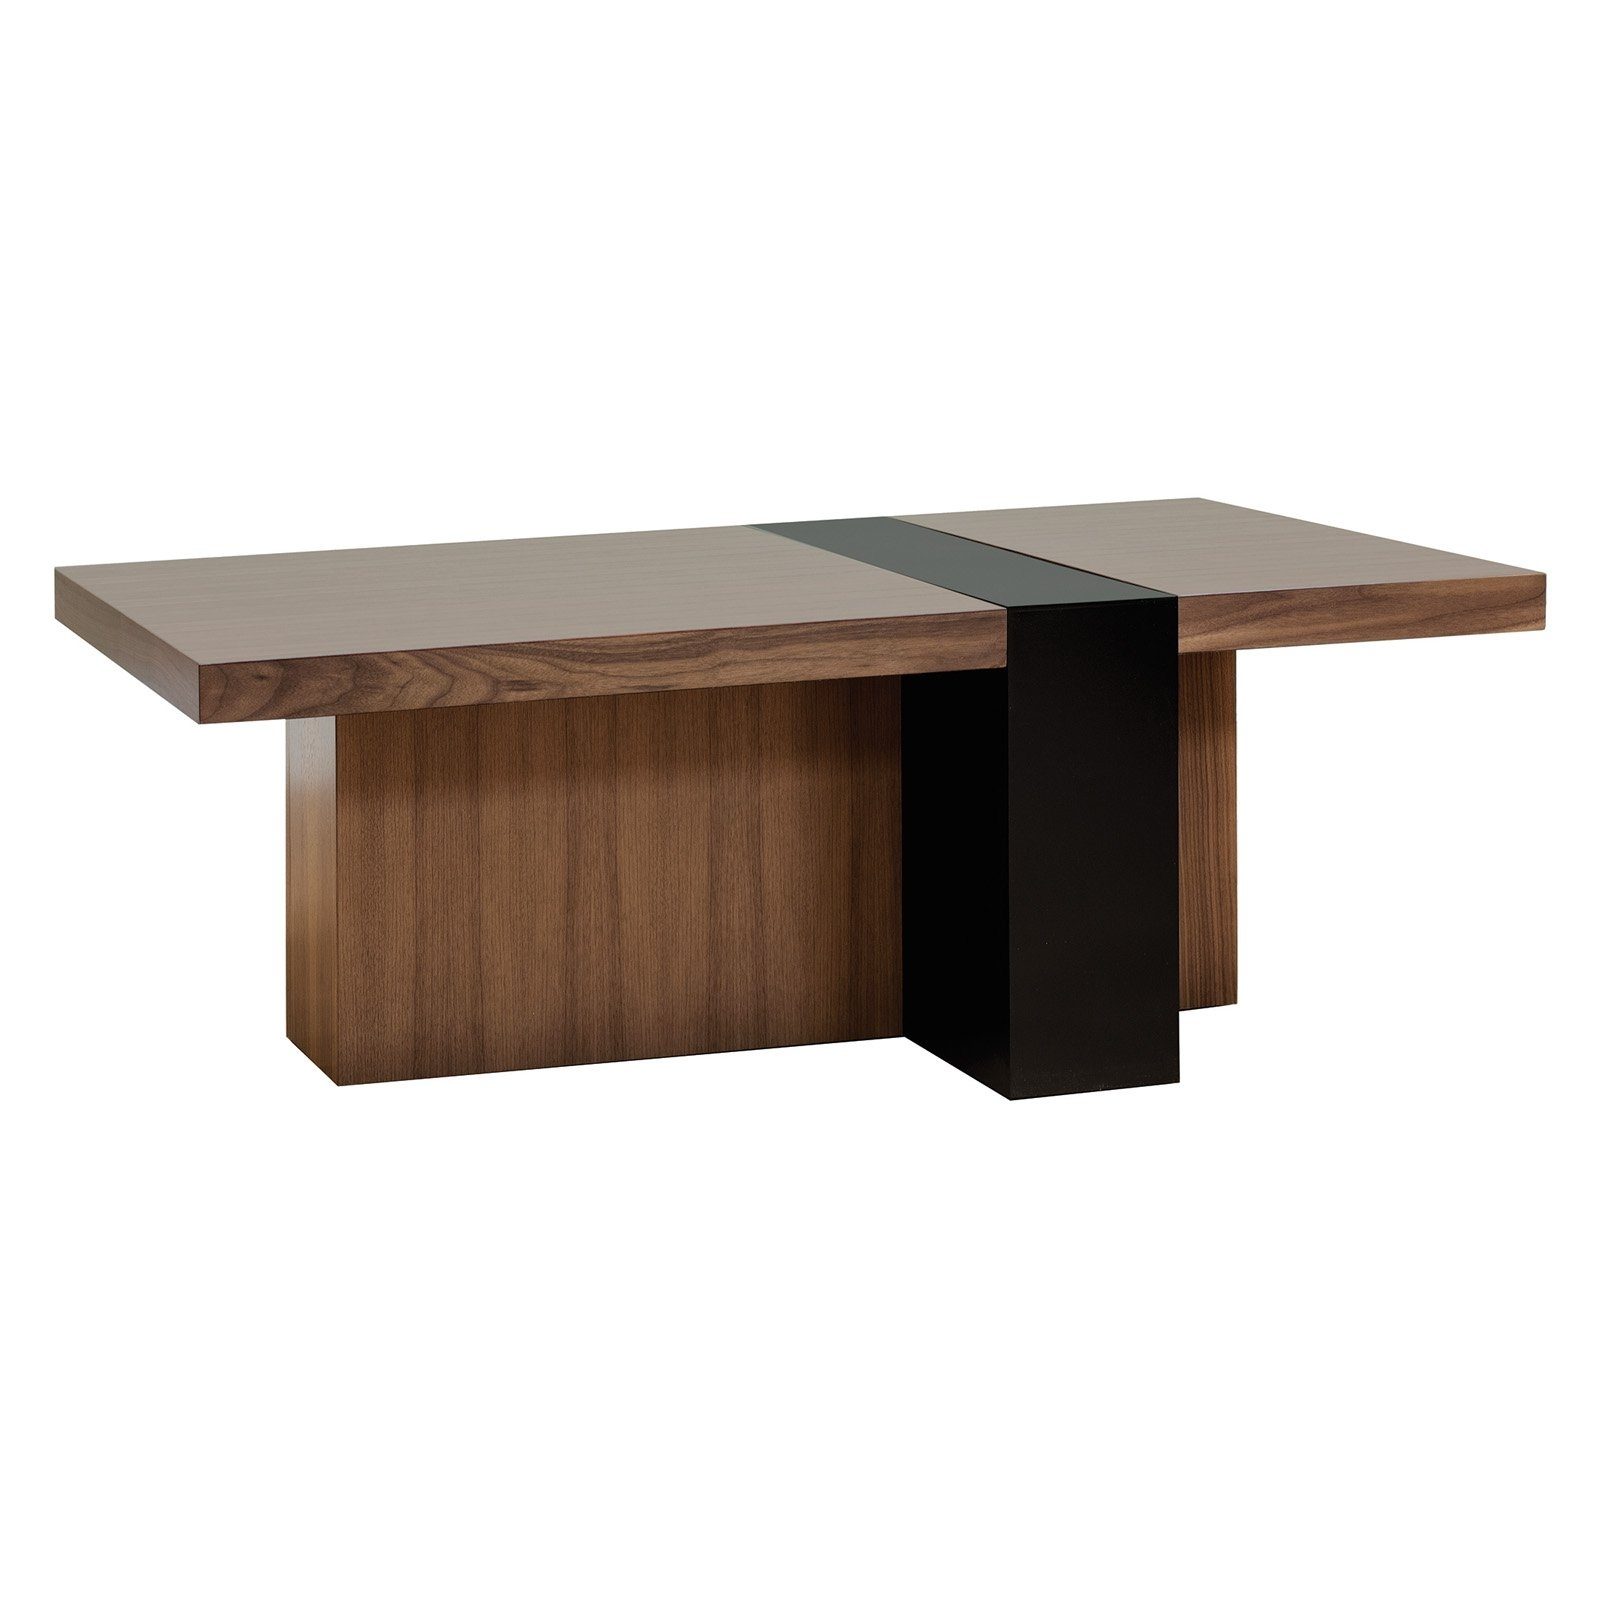 Most Popular Stratus Cocktail Tables Throughout Martin Furniture Stratus Coffee Table – Walmart (View 7 of 20)